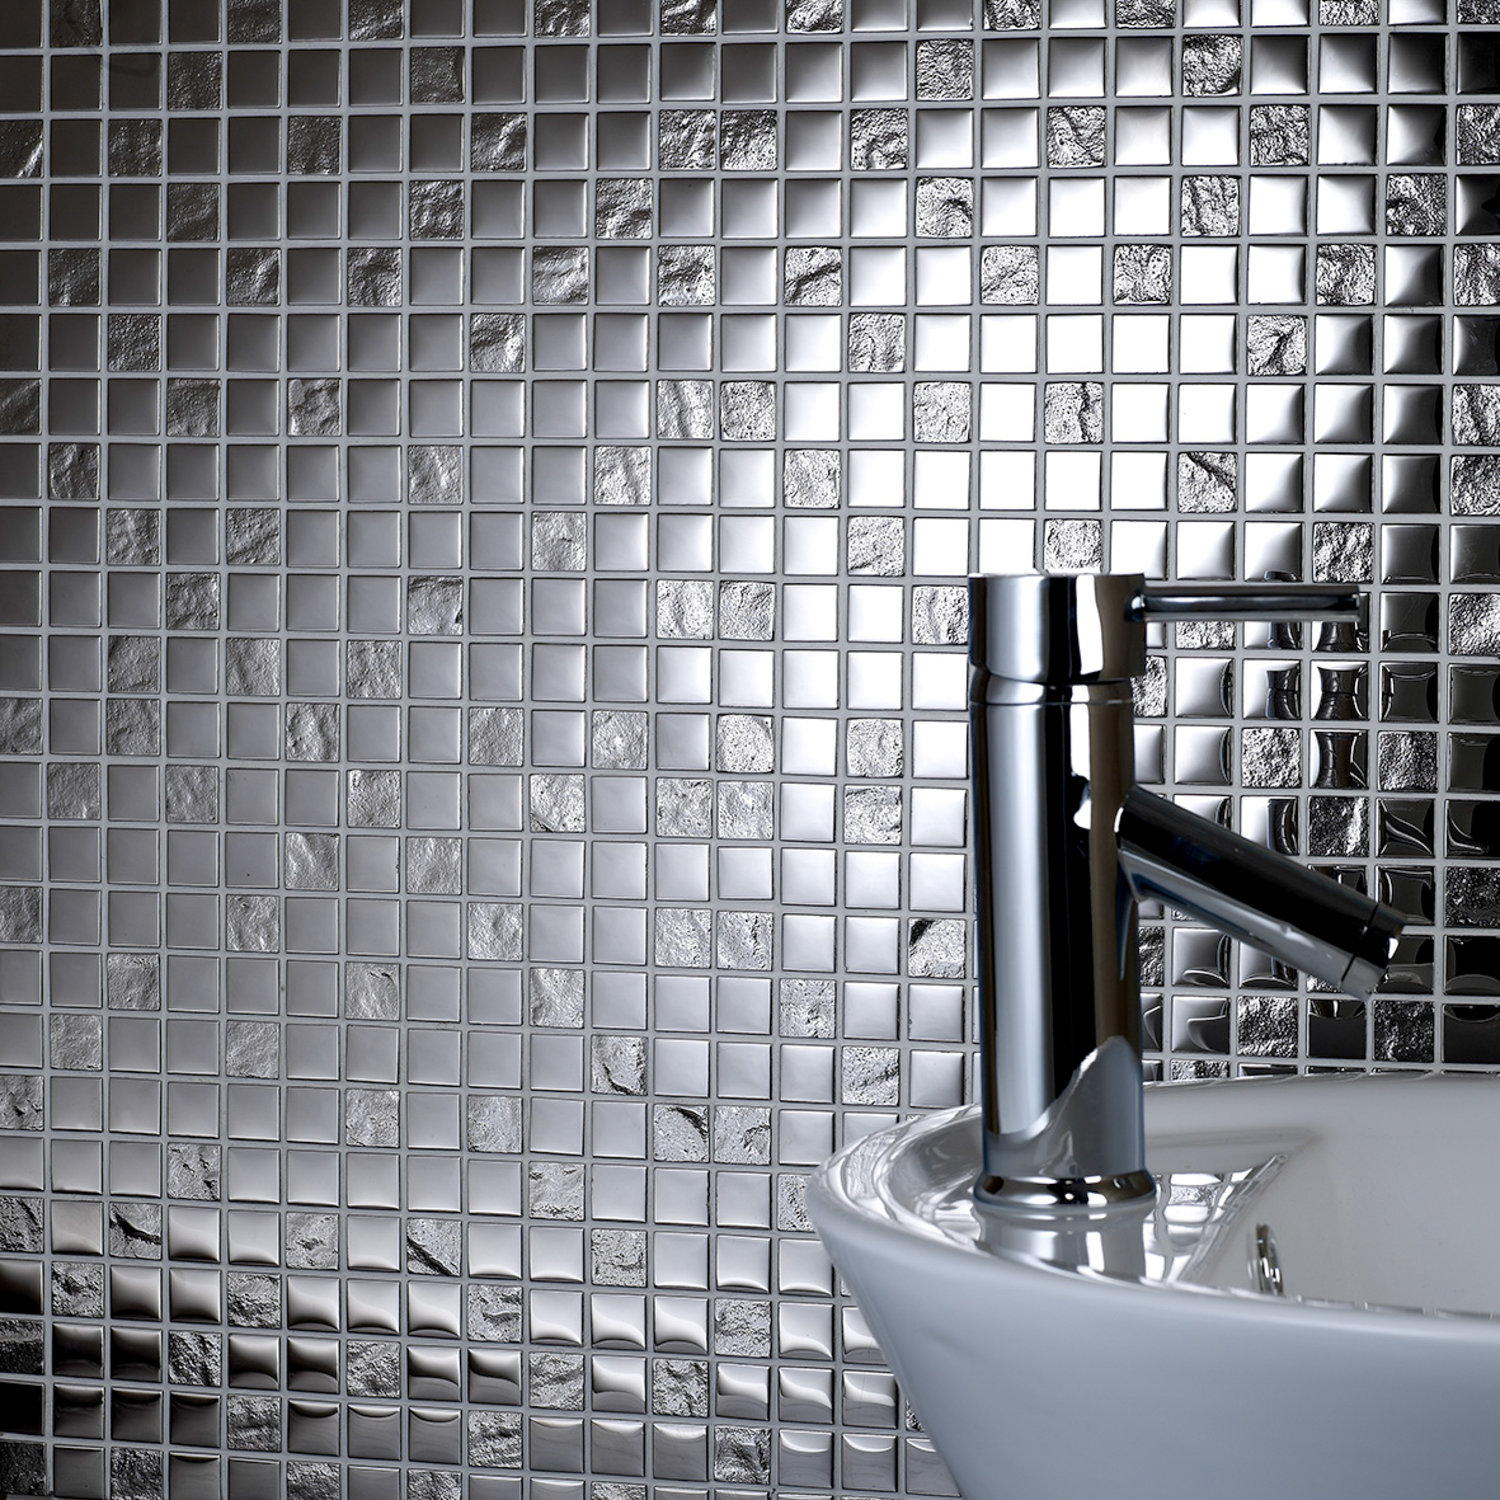 Glass Mosaics Wall Ceramic Tiles